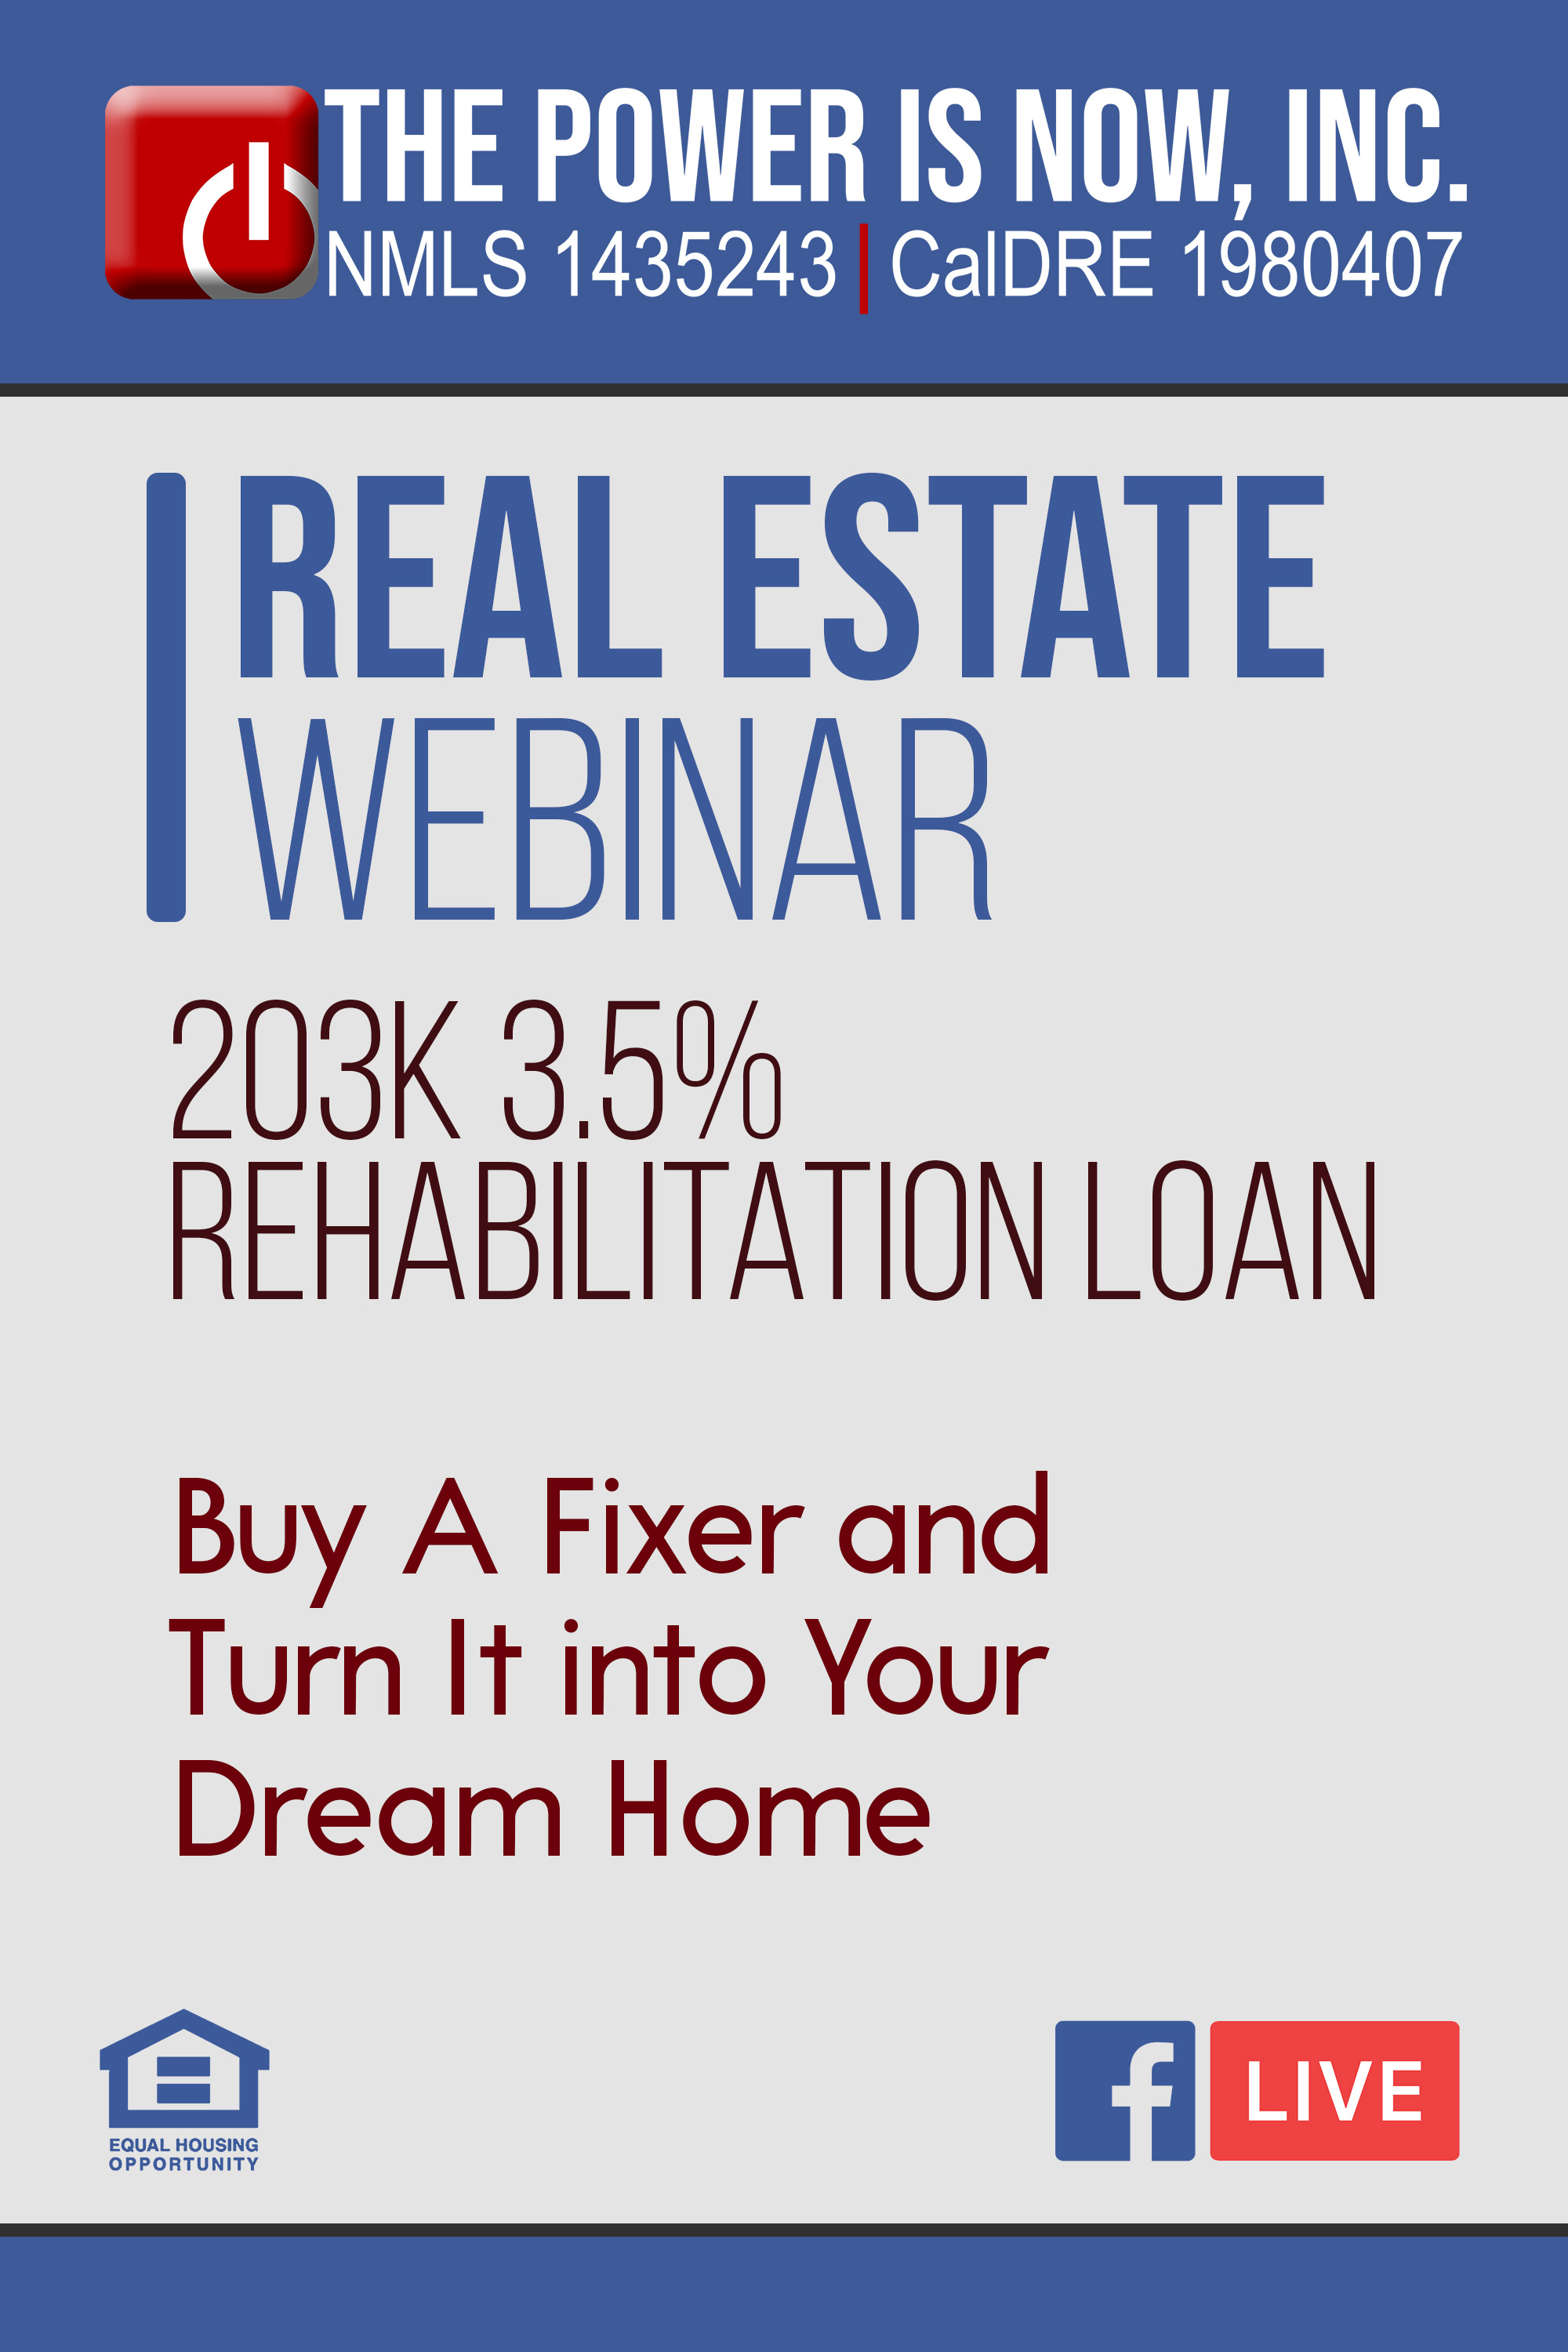 FHA 203k 3.5% Rehabilitation Loan | Buy A Fixer and Turn It into Your Dream Home